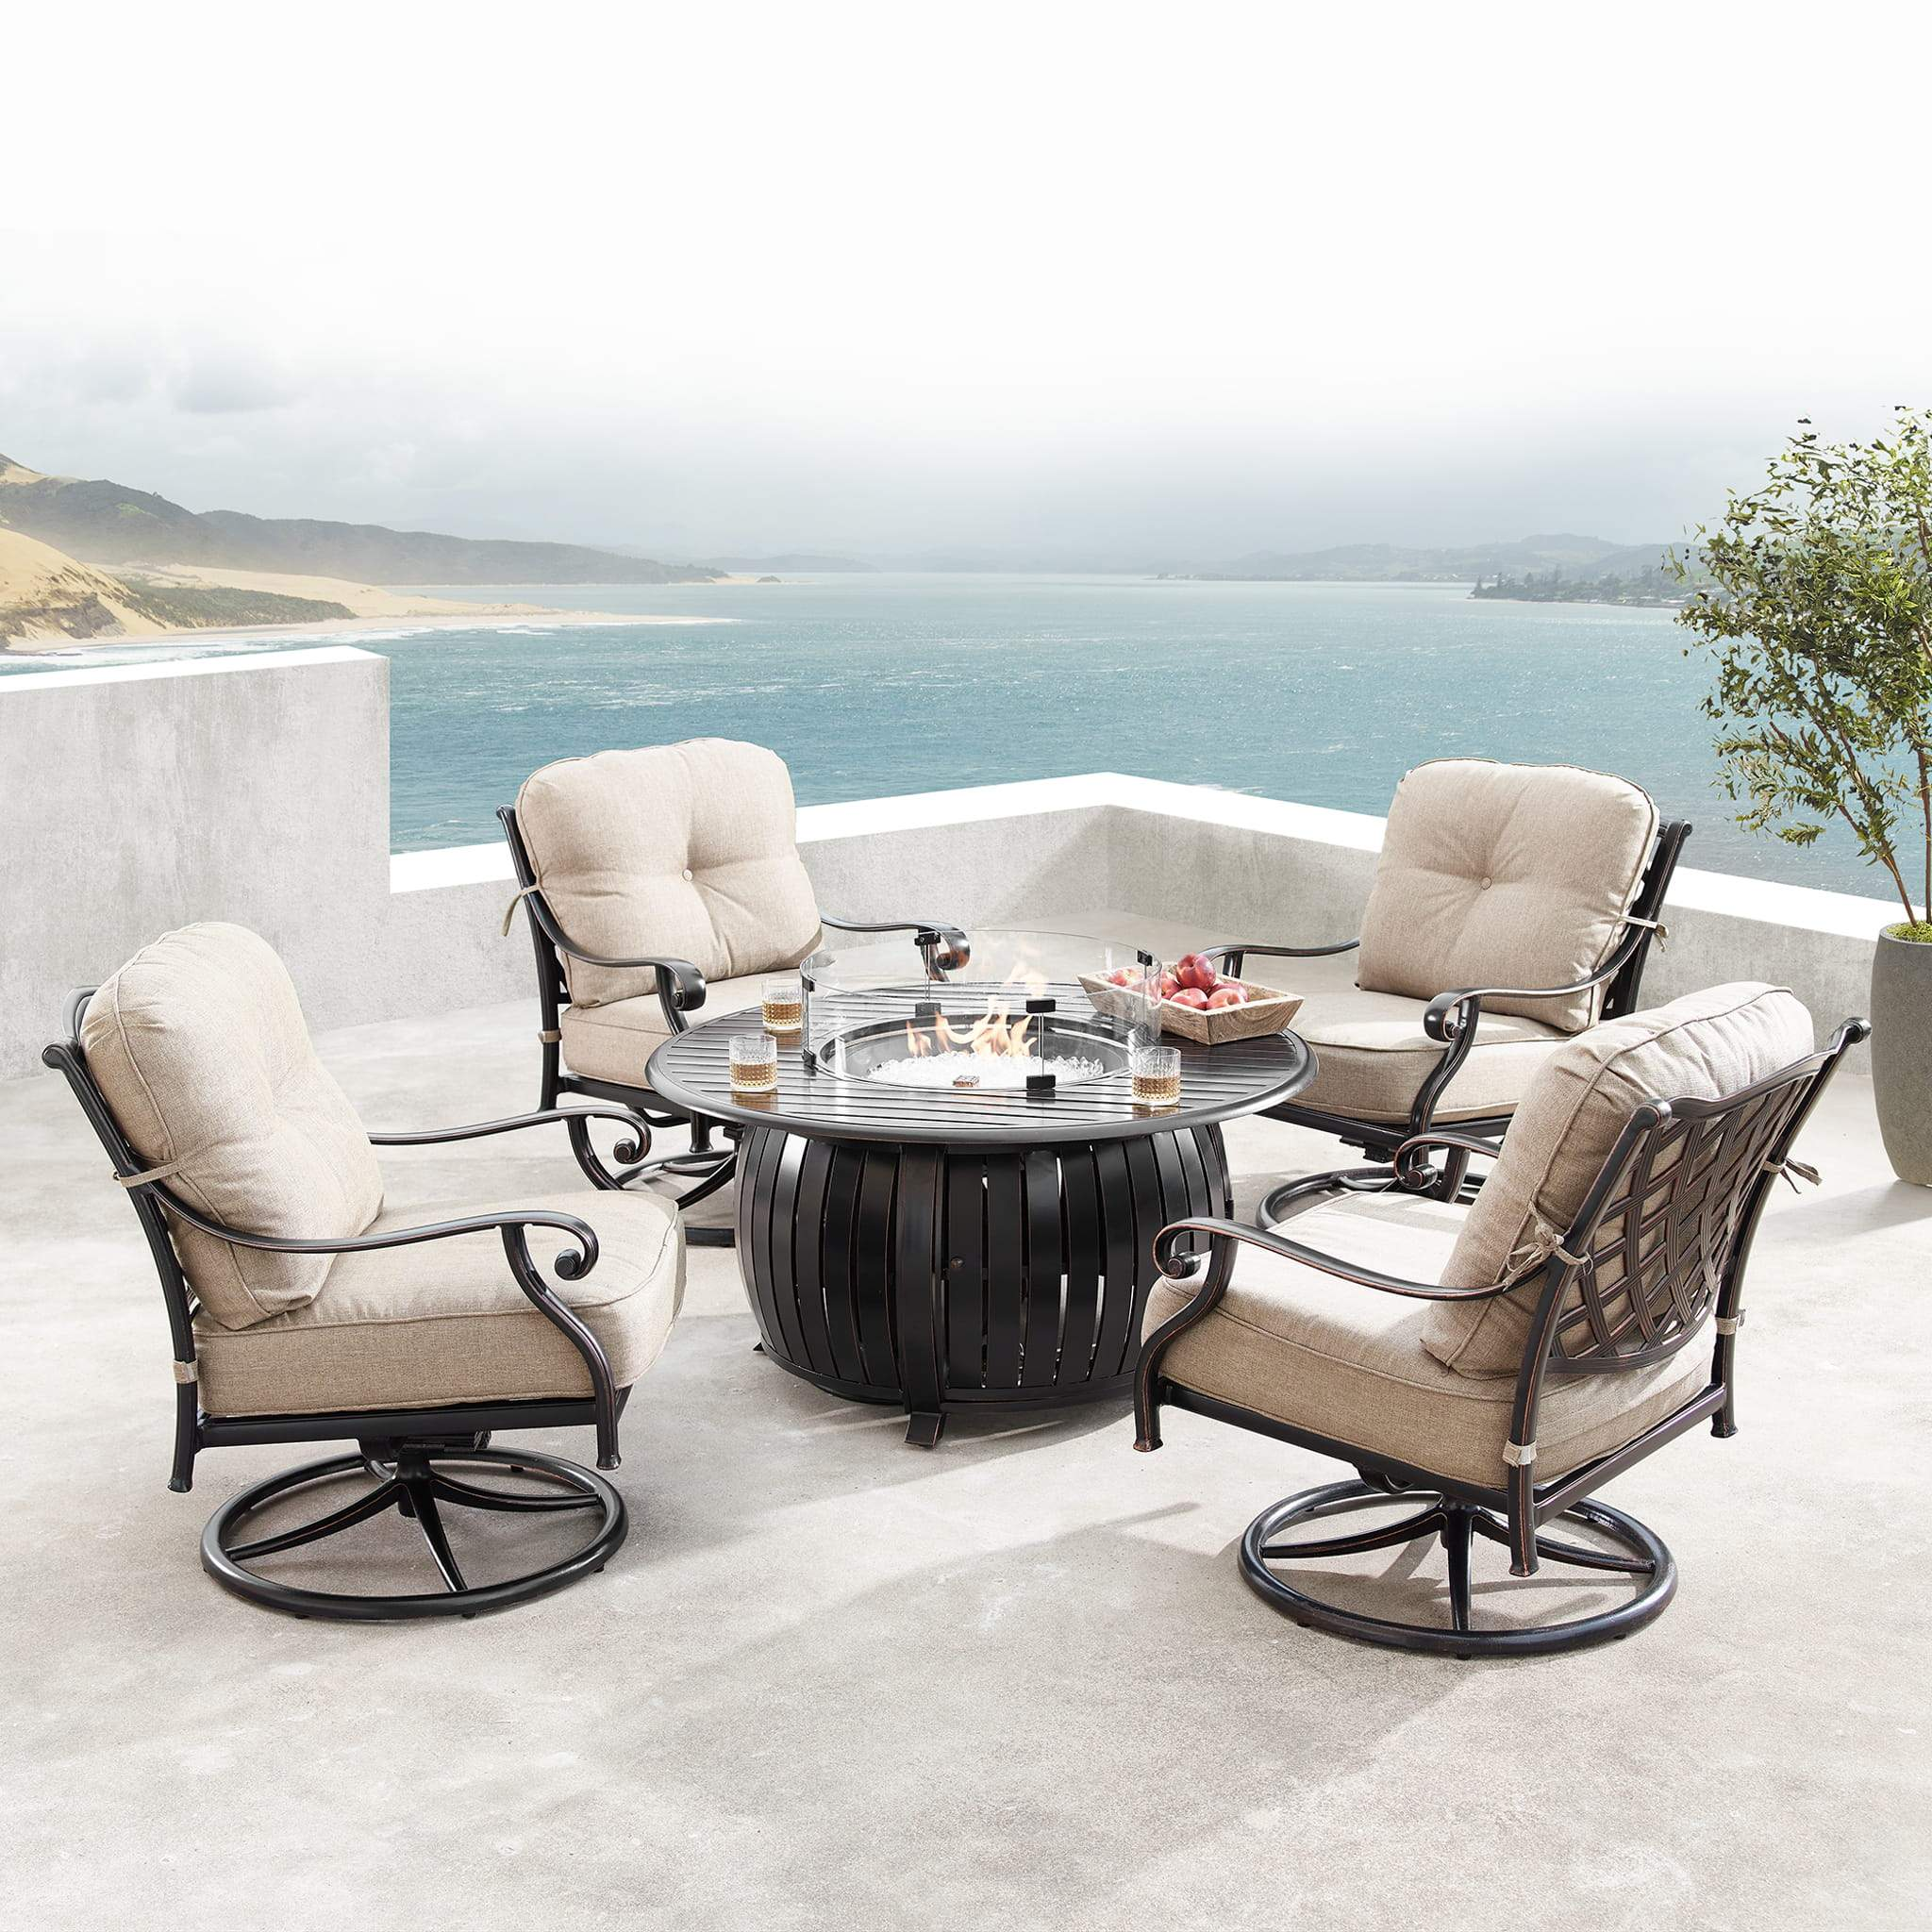 Oakland Living Finland-Italy 5-Piece Outdoor Fire Table Set - FINLAND-ITALY-5PC-AC Outdoor Fire Table Sets Oakland Living